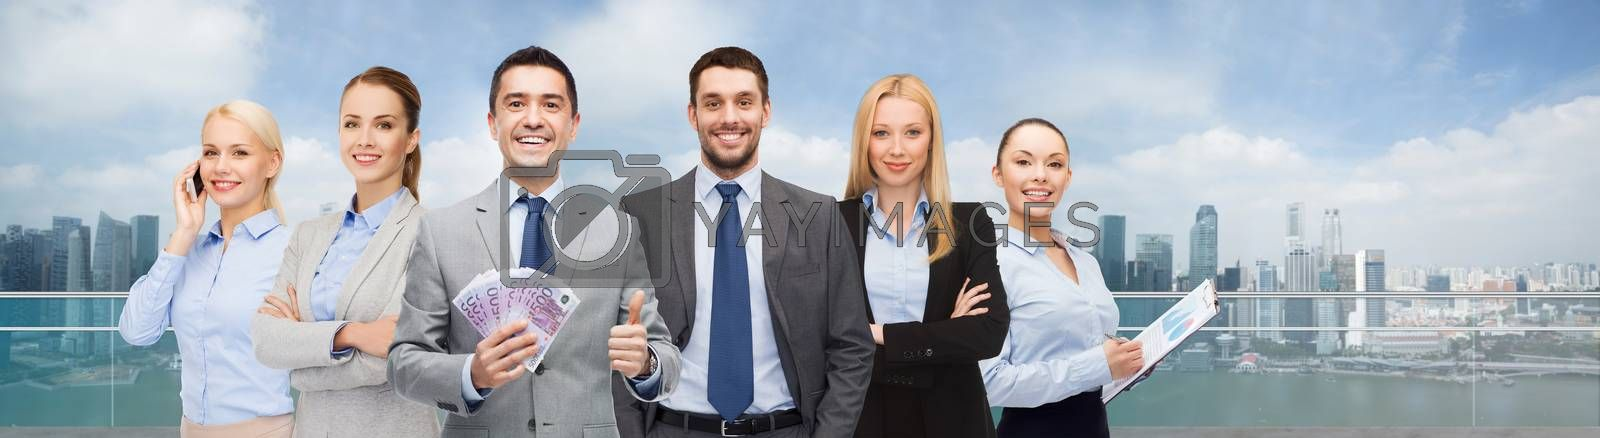 business, people and finances concept - group of smiling businessman with american dollar money